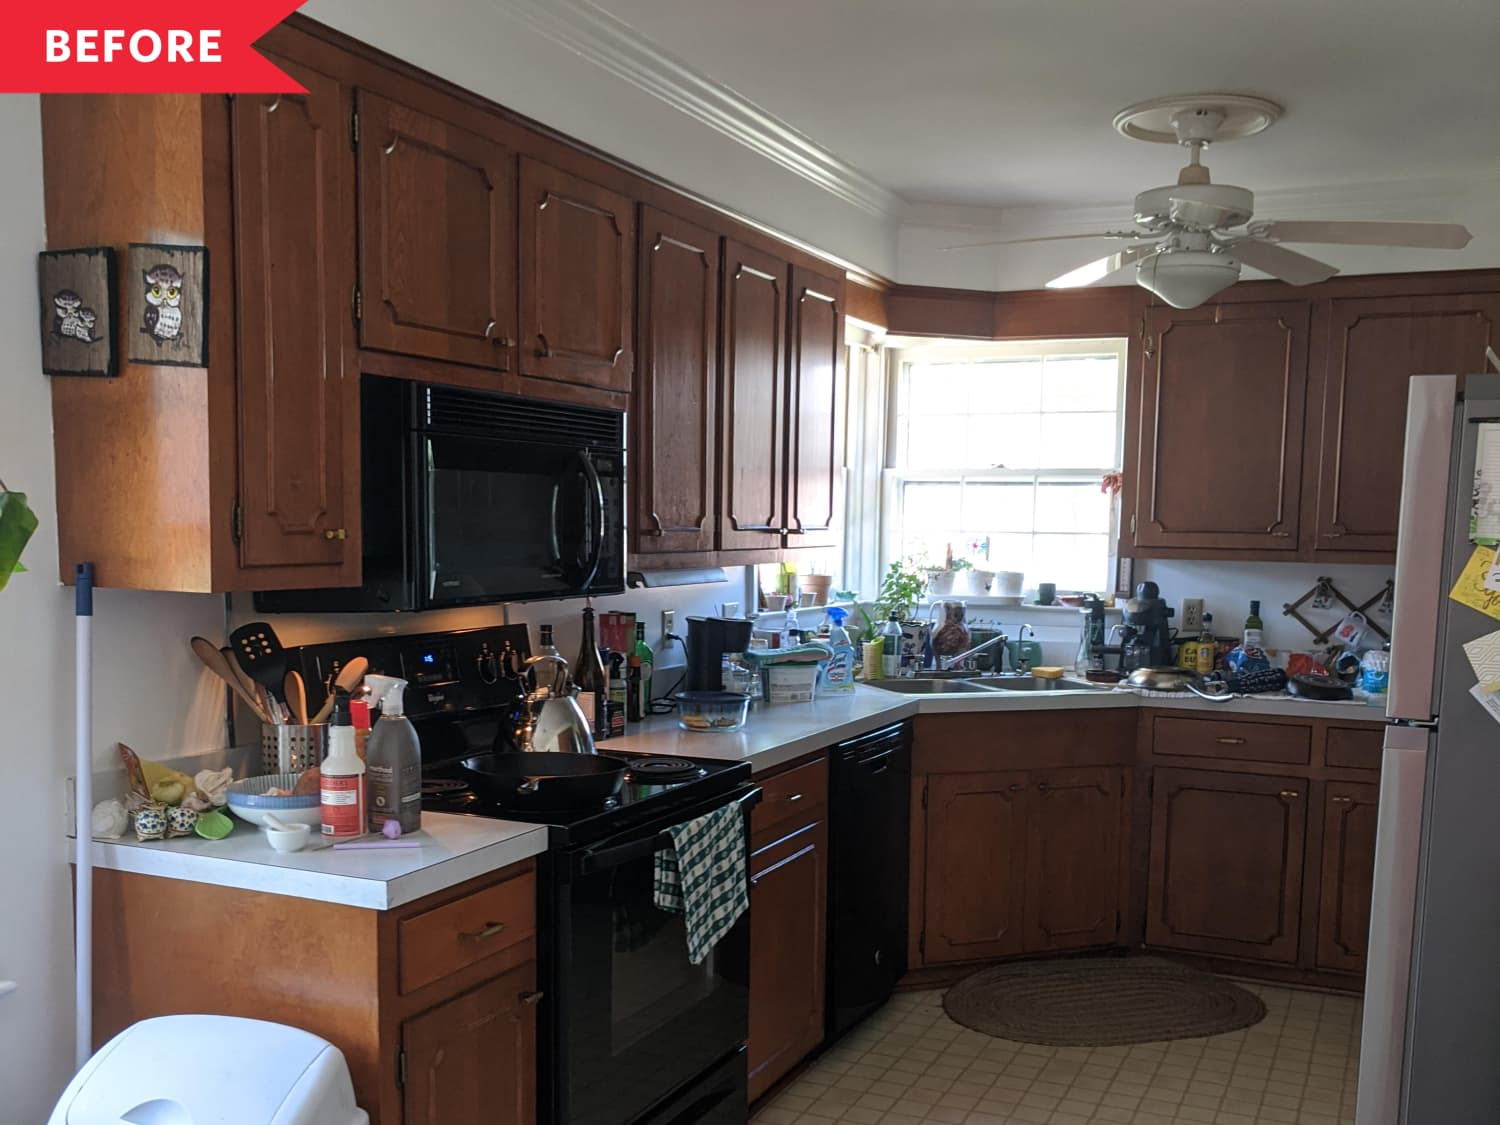 A Dim, Dated Kitchen Gets a Gorgeous DIY Makeover for $400